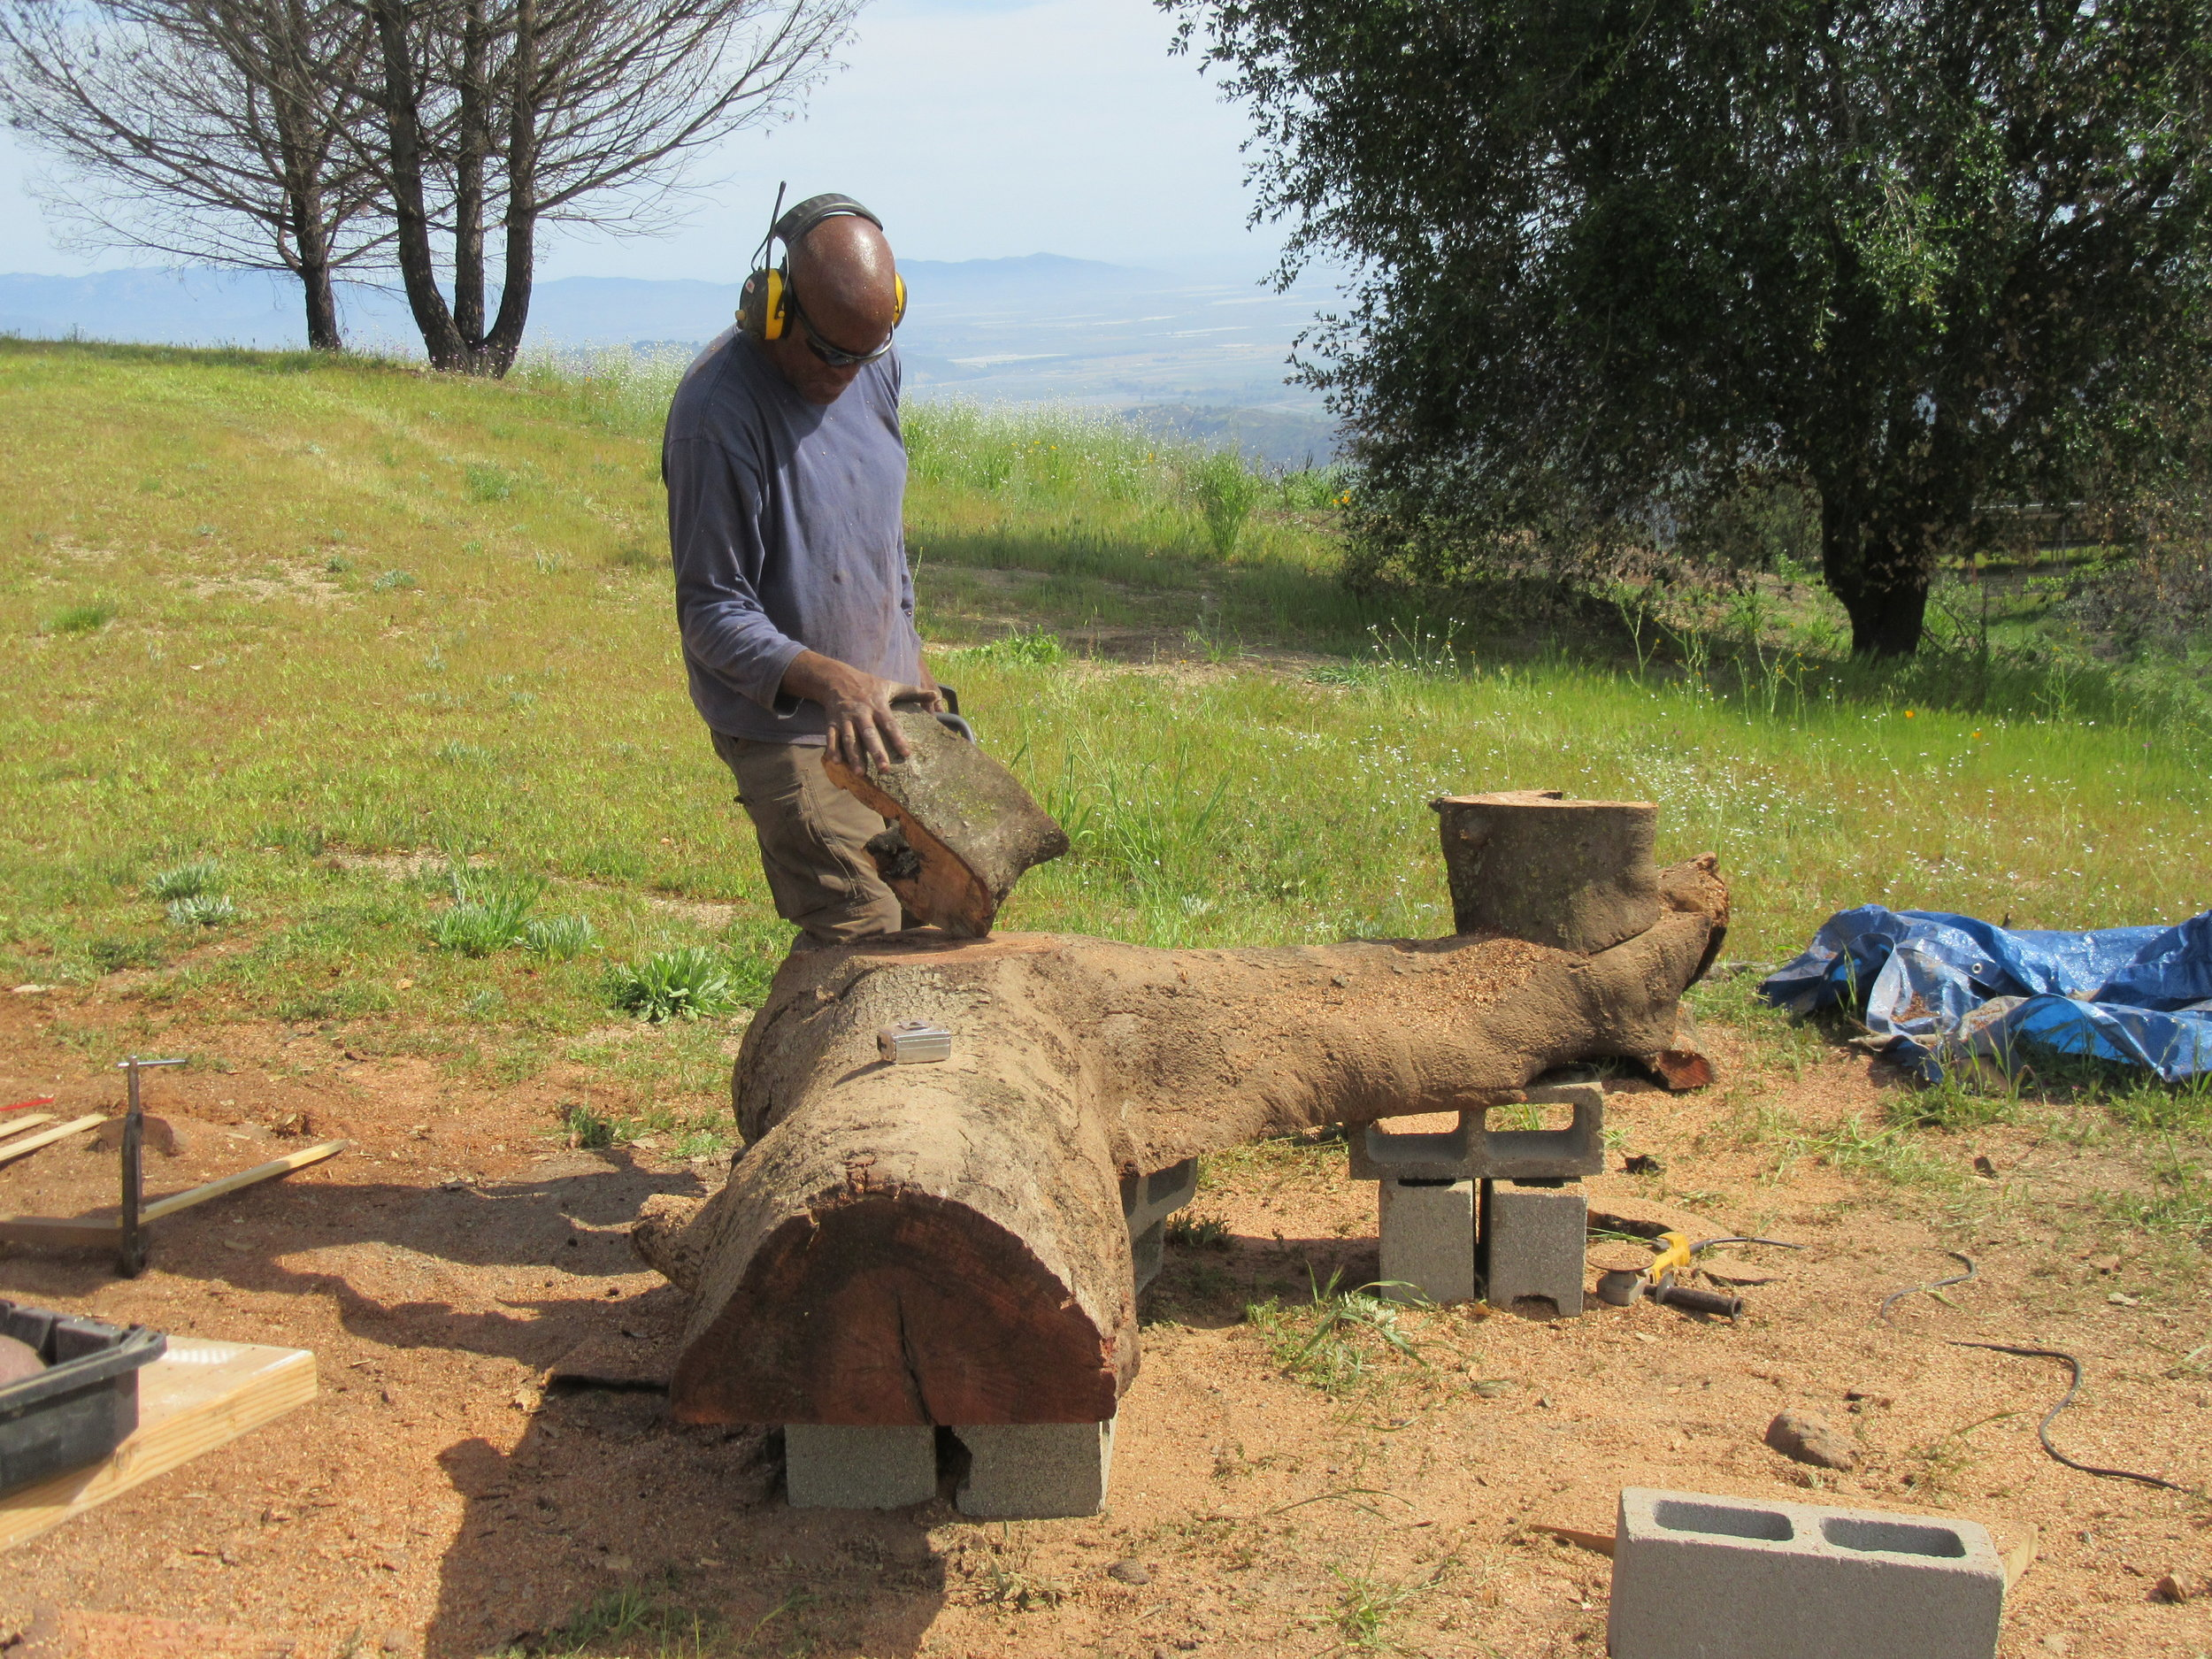 ARTISAN HAROLD GREENE attaching the legs - made of burned wood from Baba's Tree - to the half logs that were milled specifically to be used as outdoor benches at Meher Mount. (Photo: Margaret Magnus, April 21, 2018)